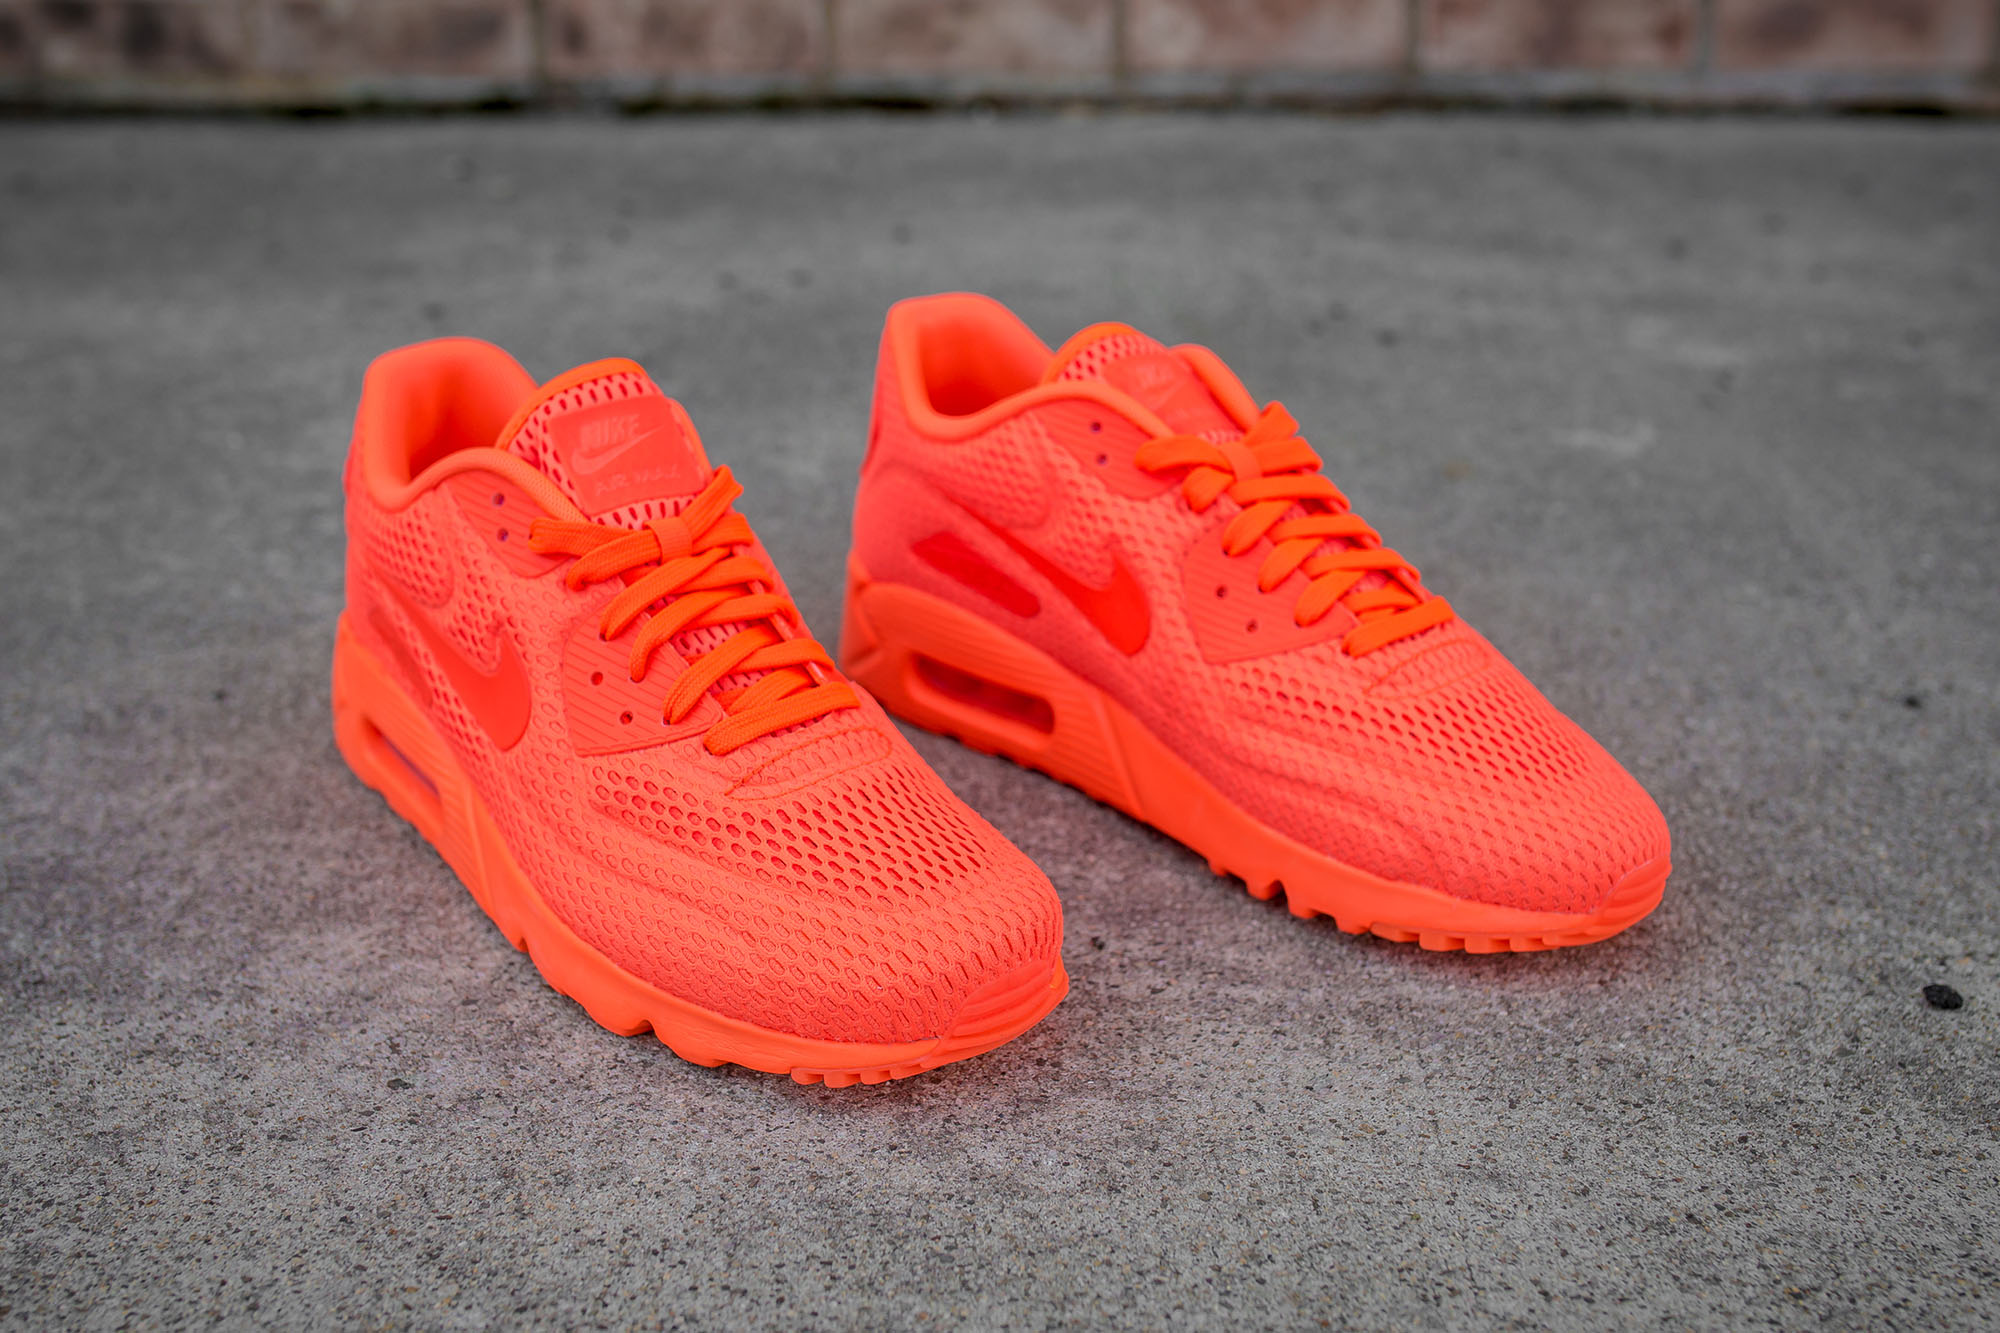 Neon Orange And Pink Nike Shoes